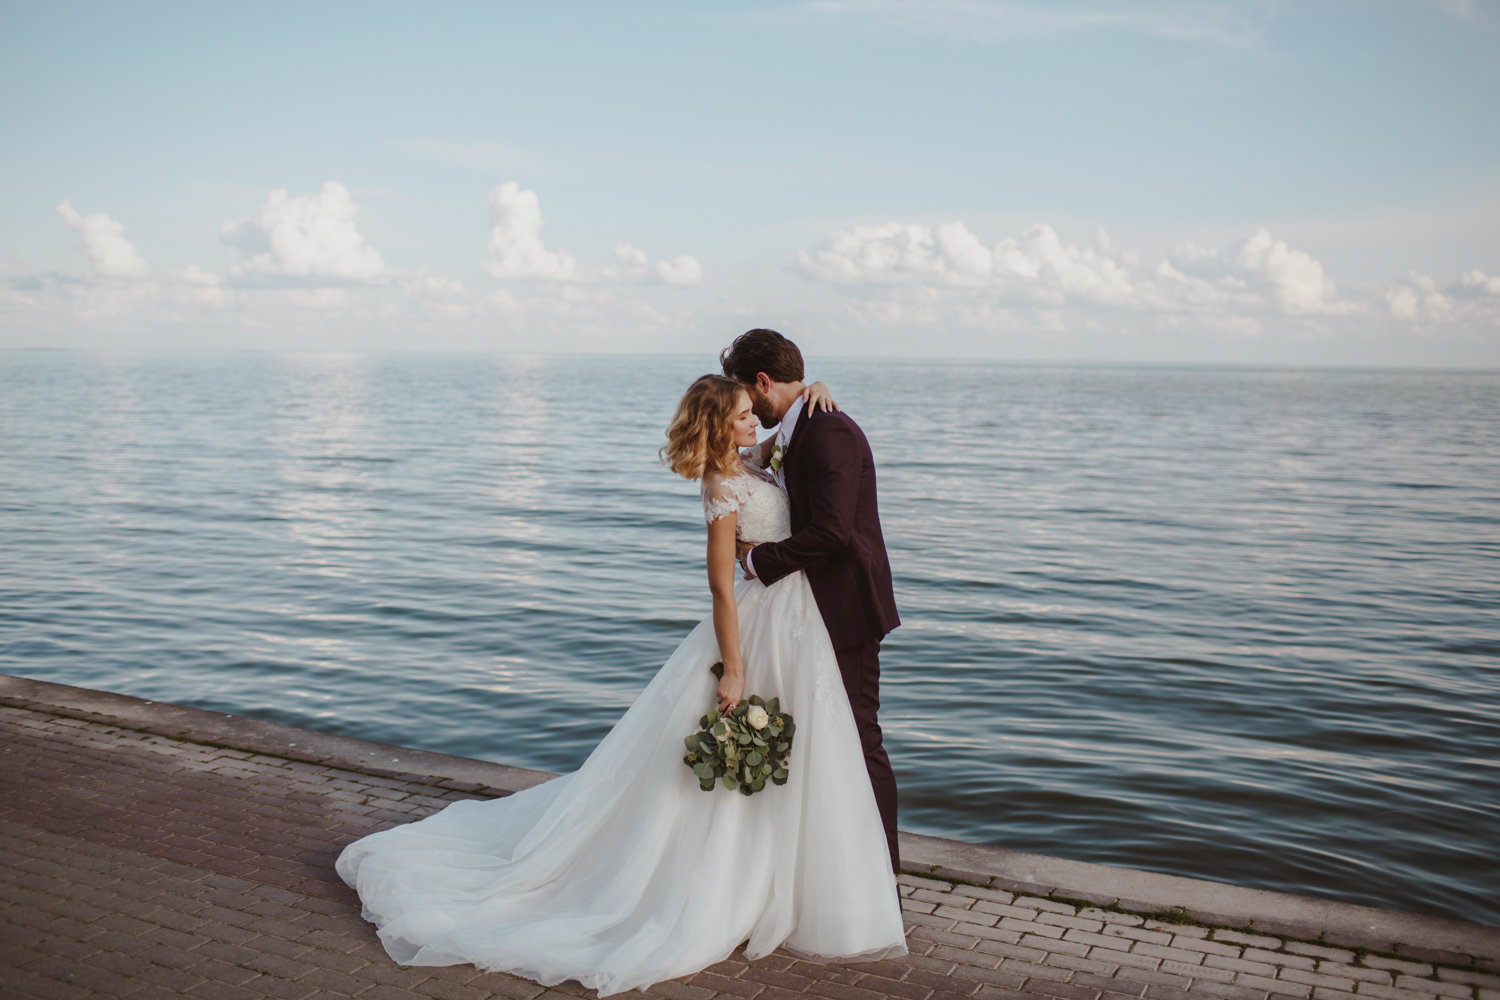 Exclusive Hire Wedding Venue In Nida Lithuania Images From Motiejus